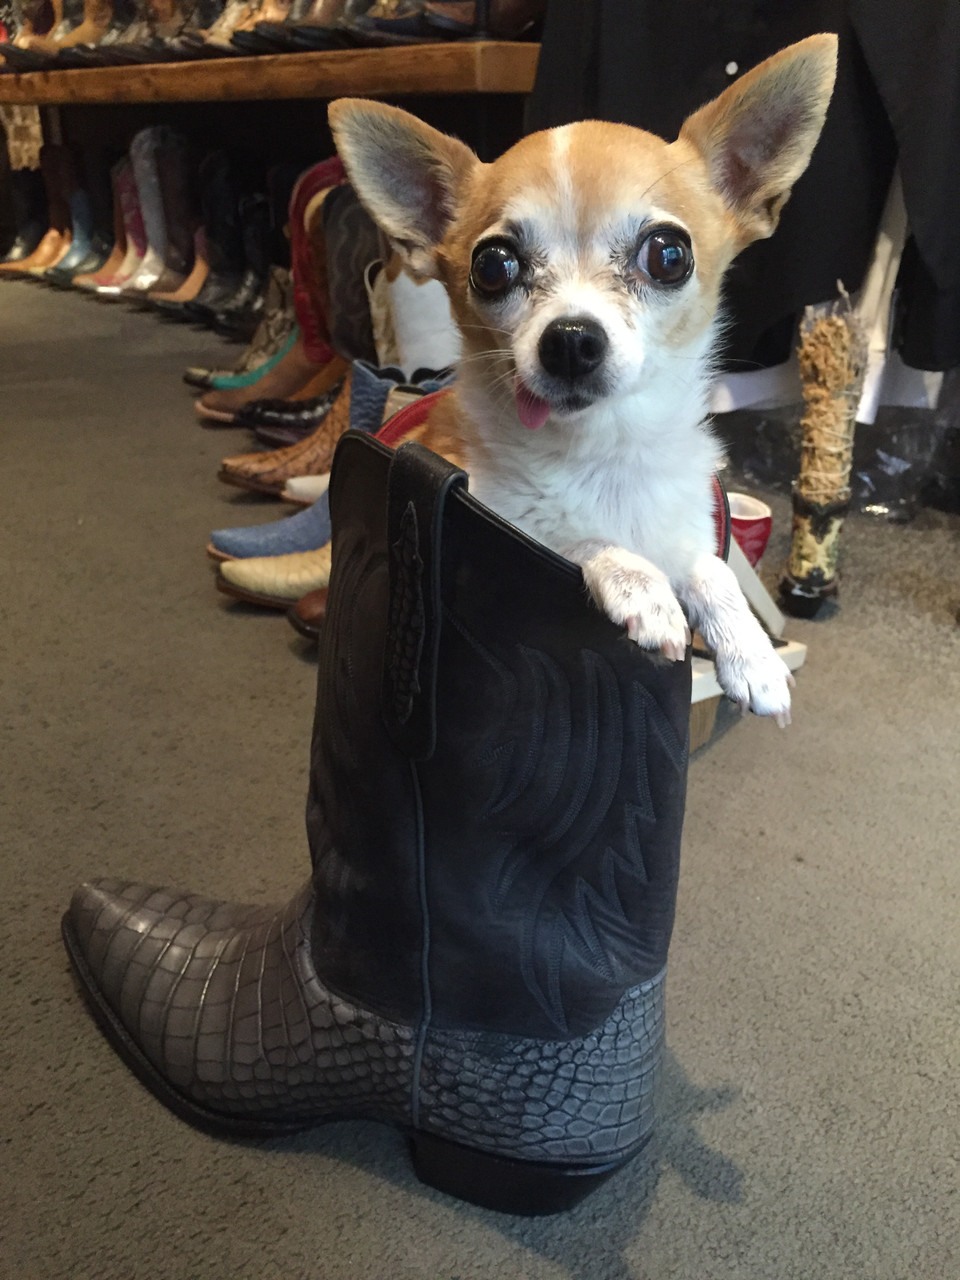 How is a Cowboy Boots Supposed to Fit?